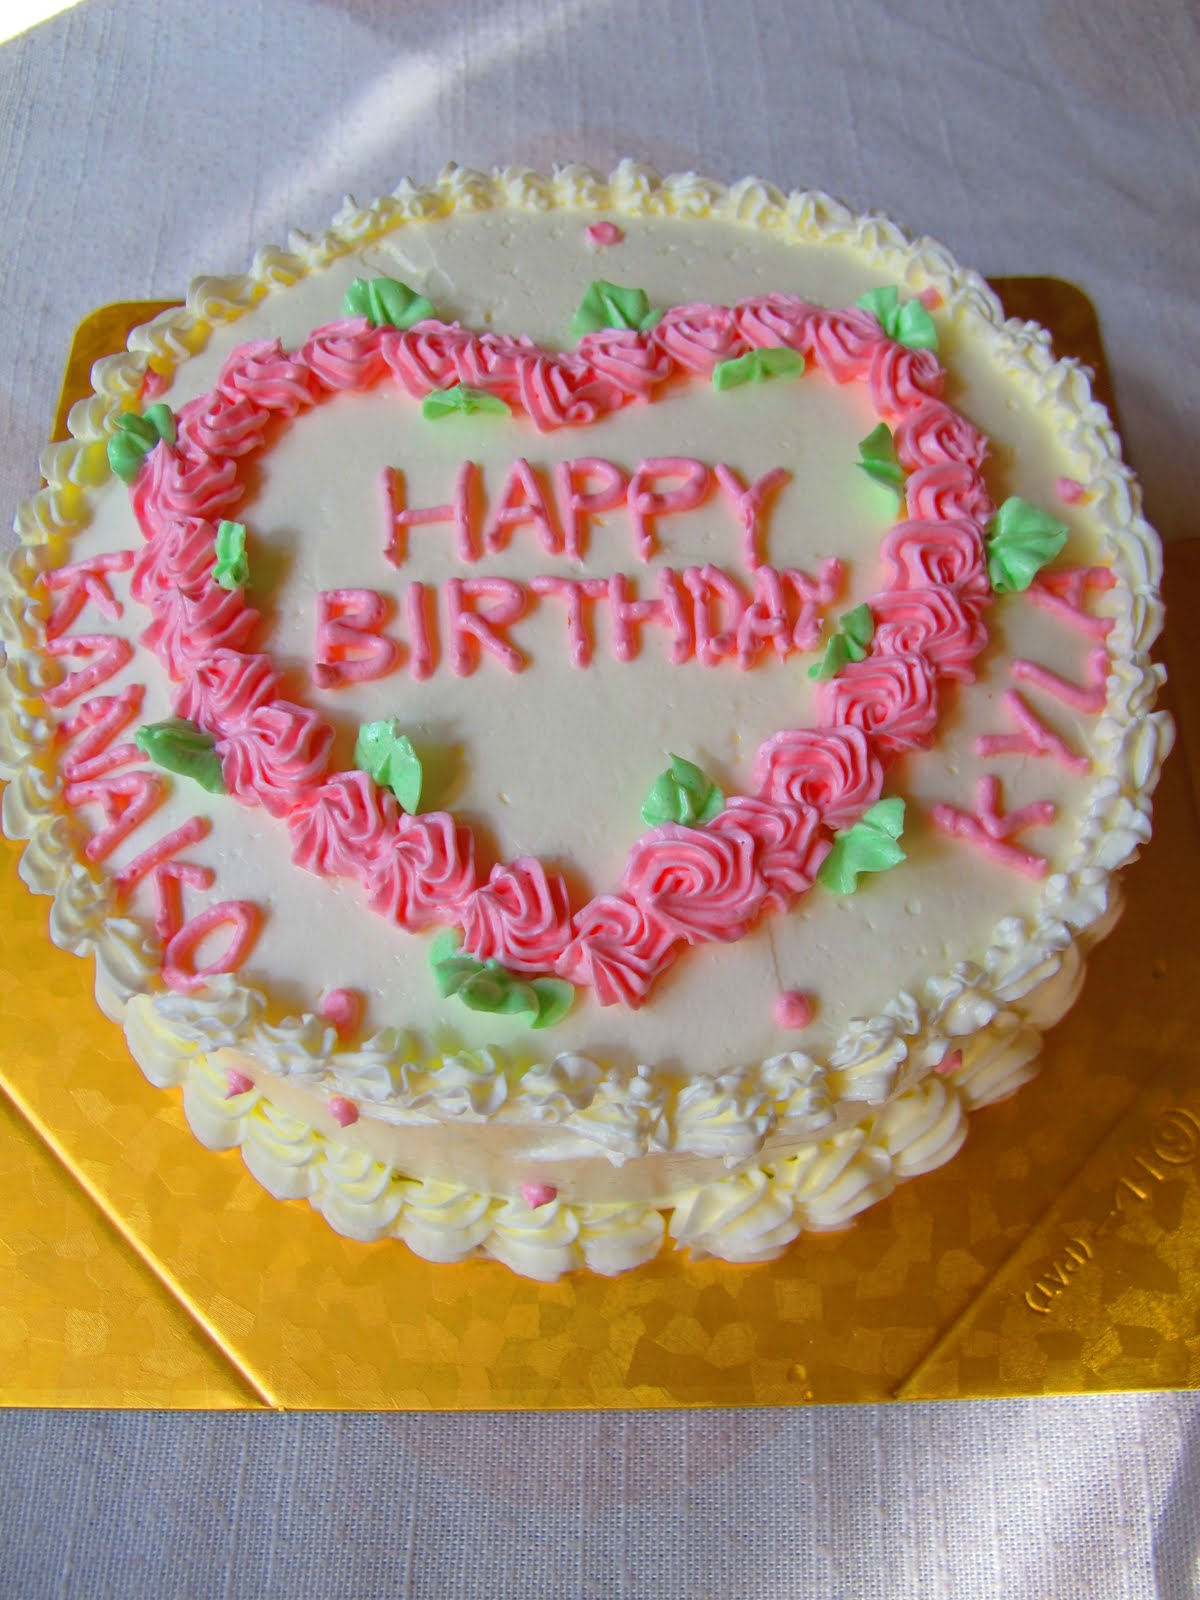 Happy Birthday Cake And Flowers Images 11 Most Common Flowers For Birthday Cakes Photo Birthday Cake With